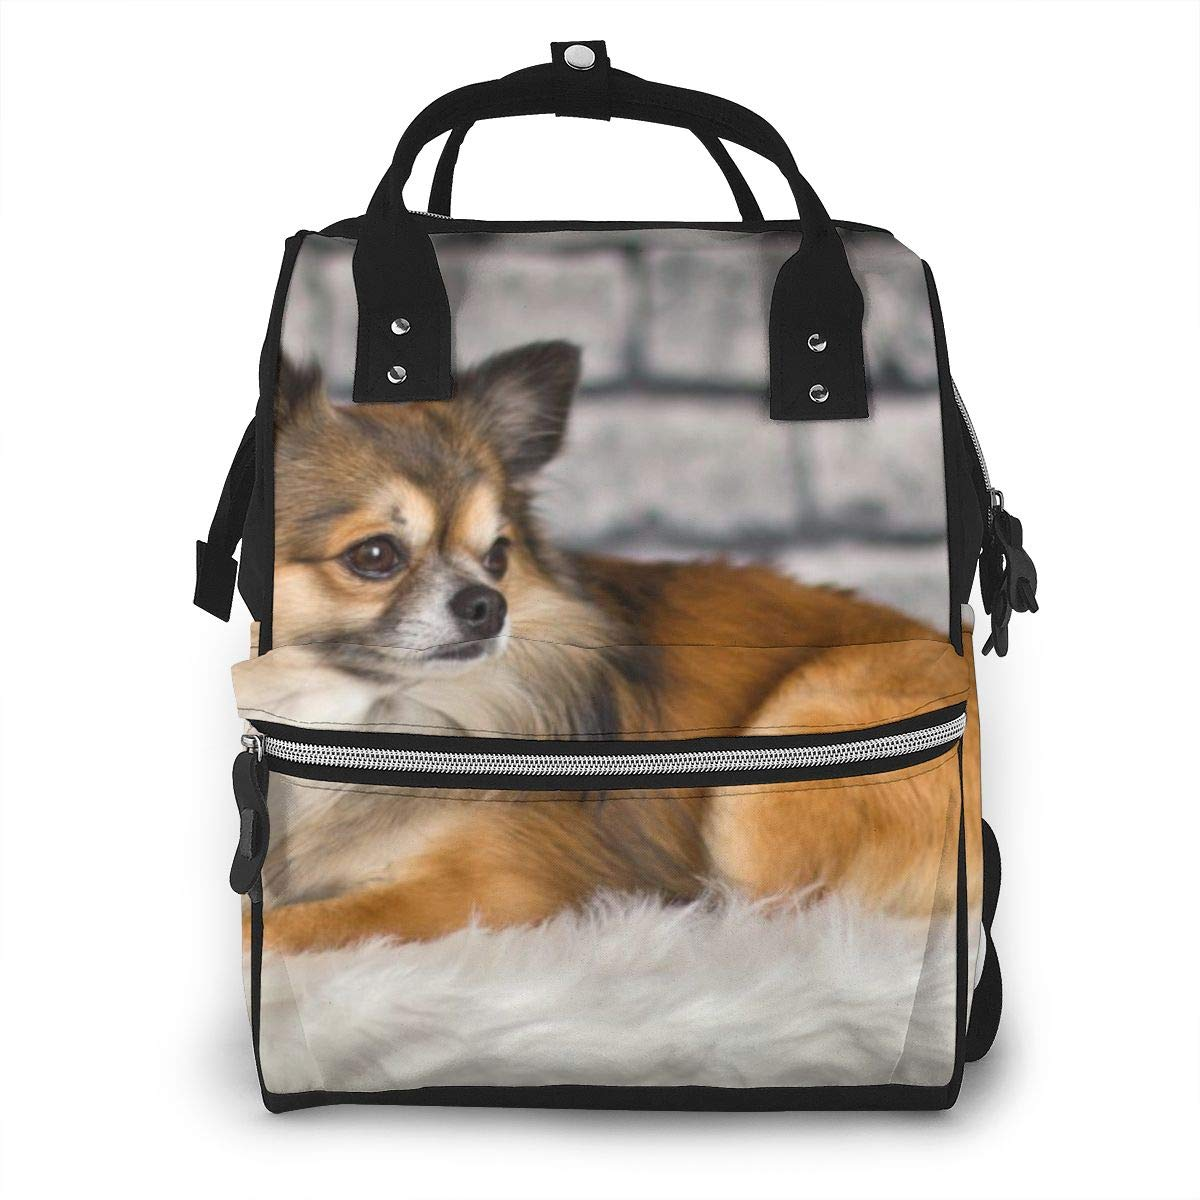 Small Cute Chihuahua Dog Large Capacity Diaper Nappy Travel Nursing Bag Mummy Mom Backpack Laptop Multi-Function for Baby Care Women Family